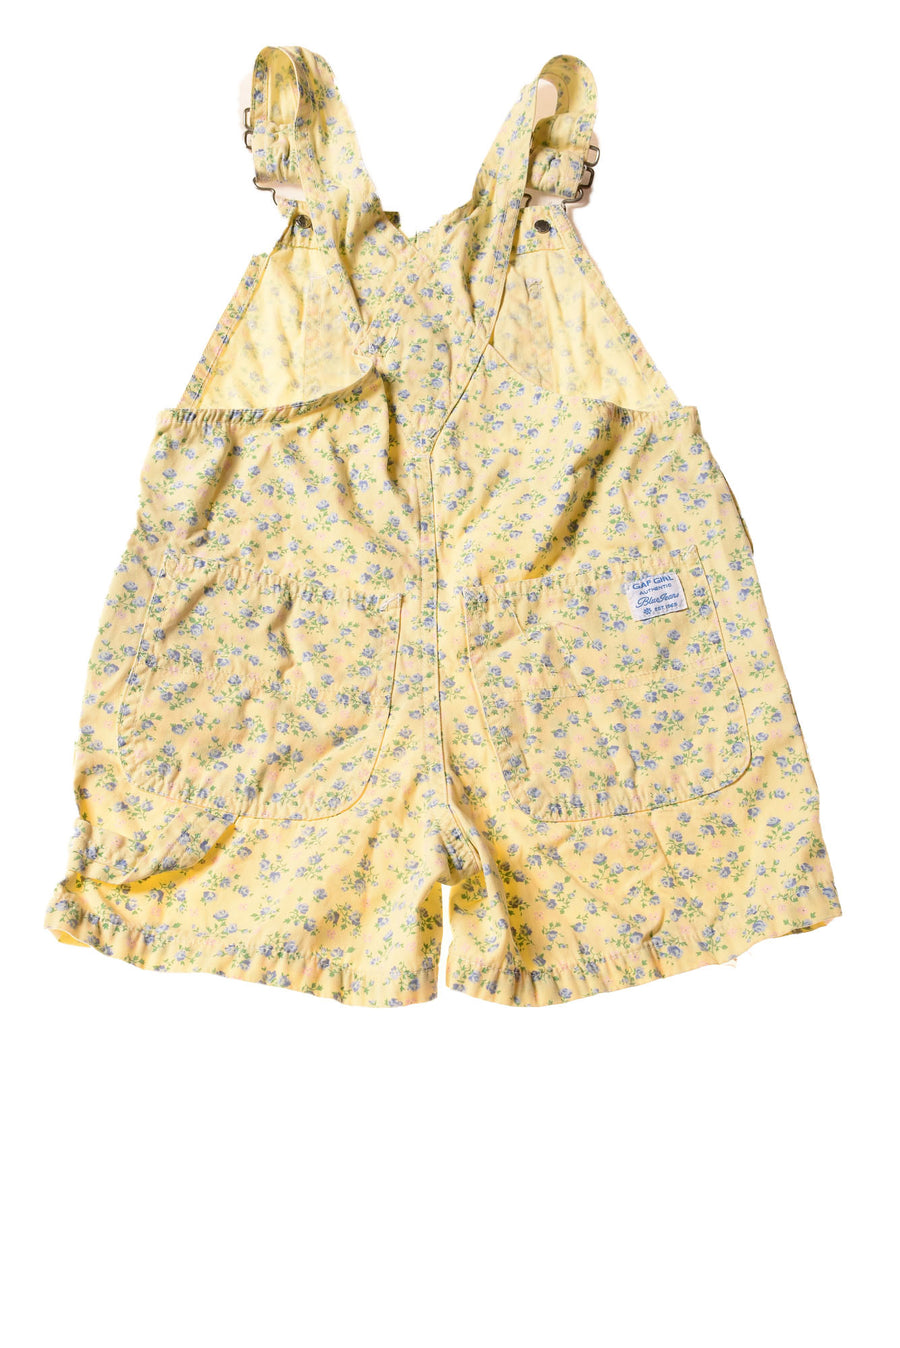 USED Gap Girl's Shorts X-Small Yellow / Floral Print